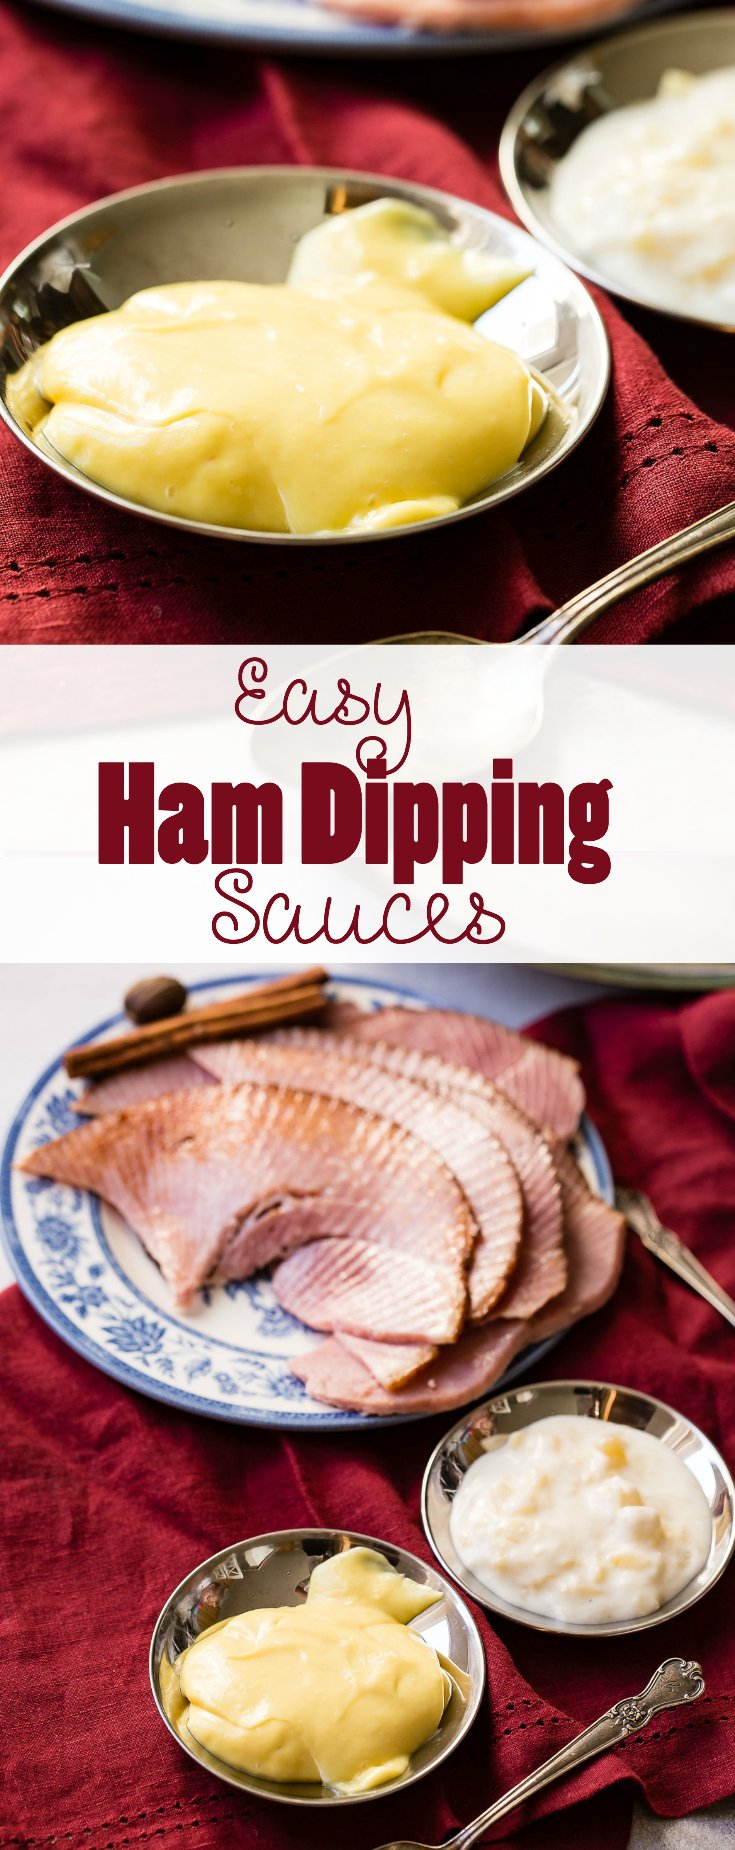 These are the best easy ham dipping sauces that I've ever had. A sweet honey mustard and pina colada sauce that will have your guests raving about the food.